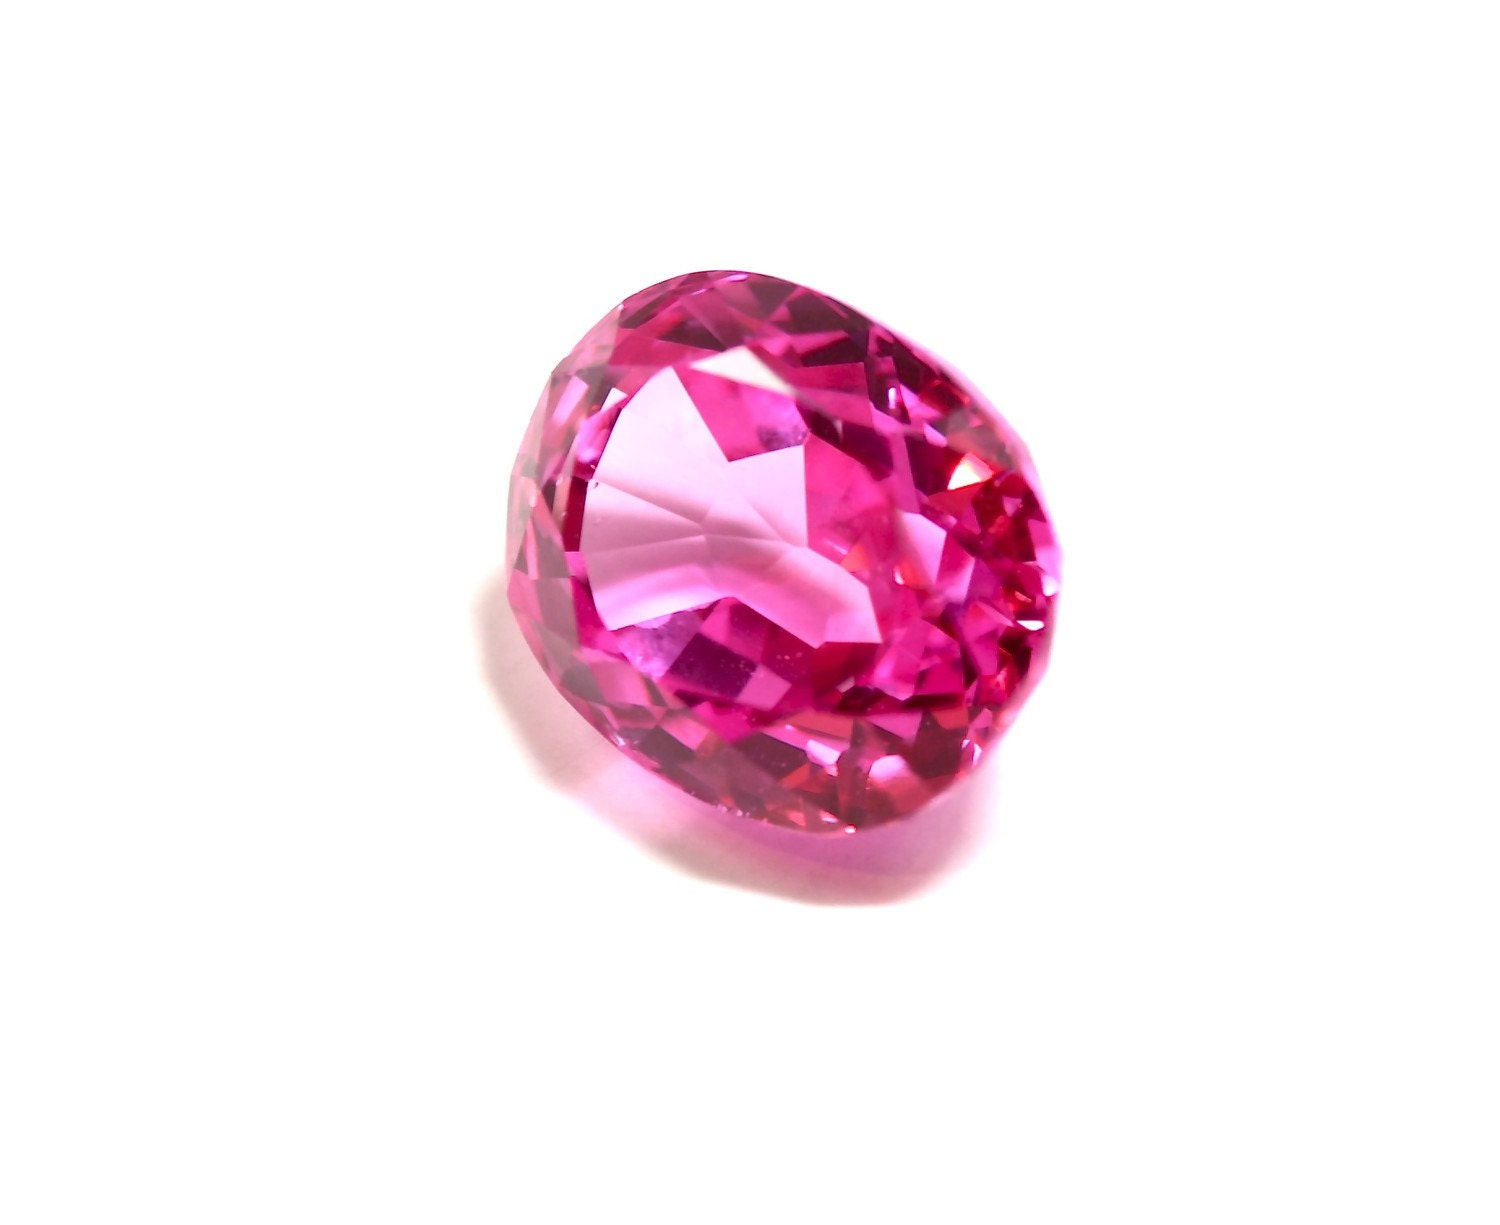 pink mystic topaz gemstone 14 x 12mm oval cut